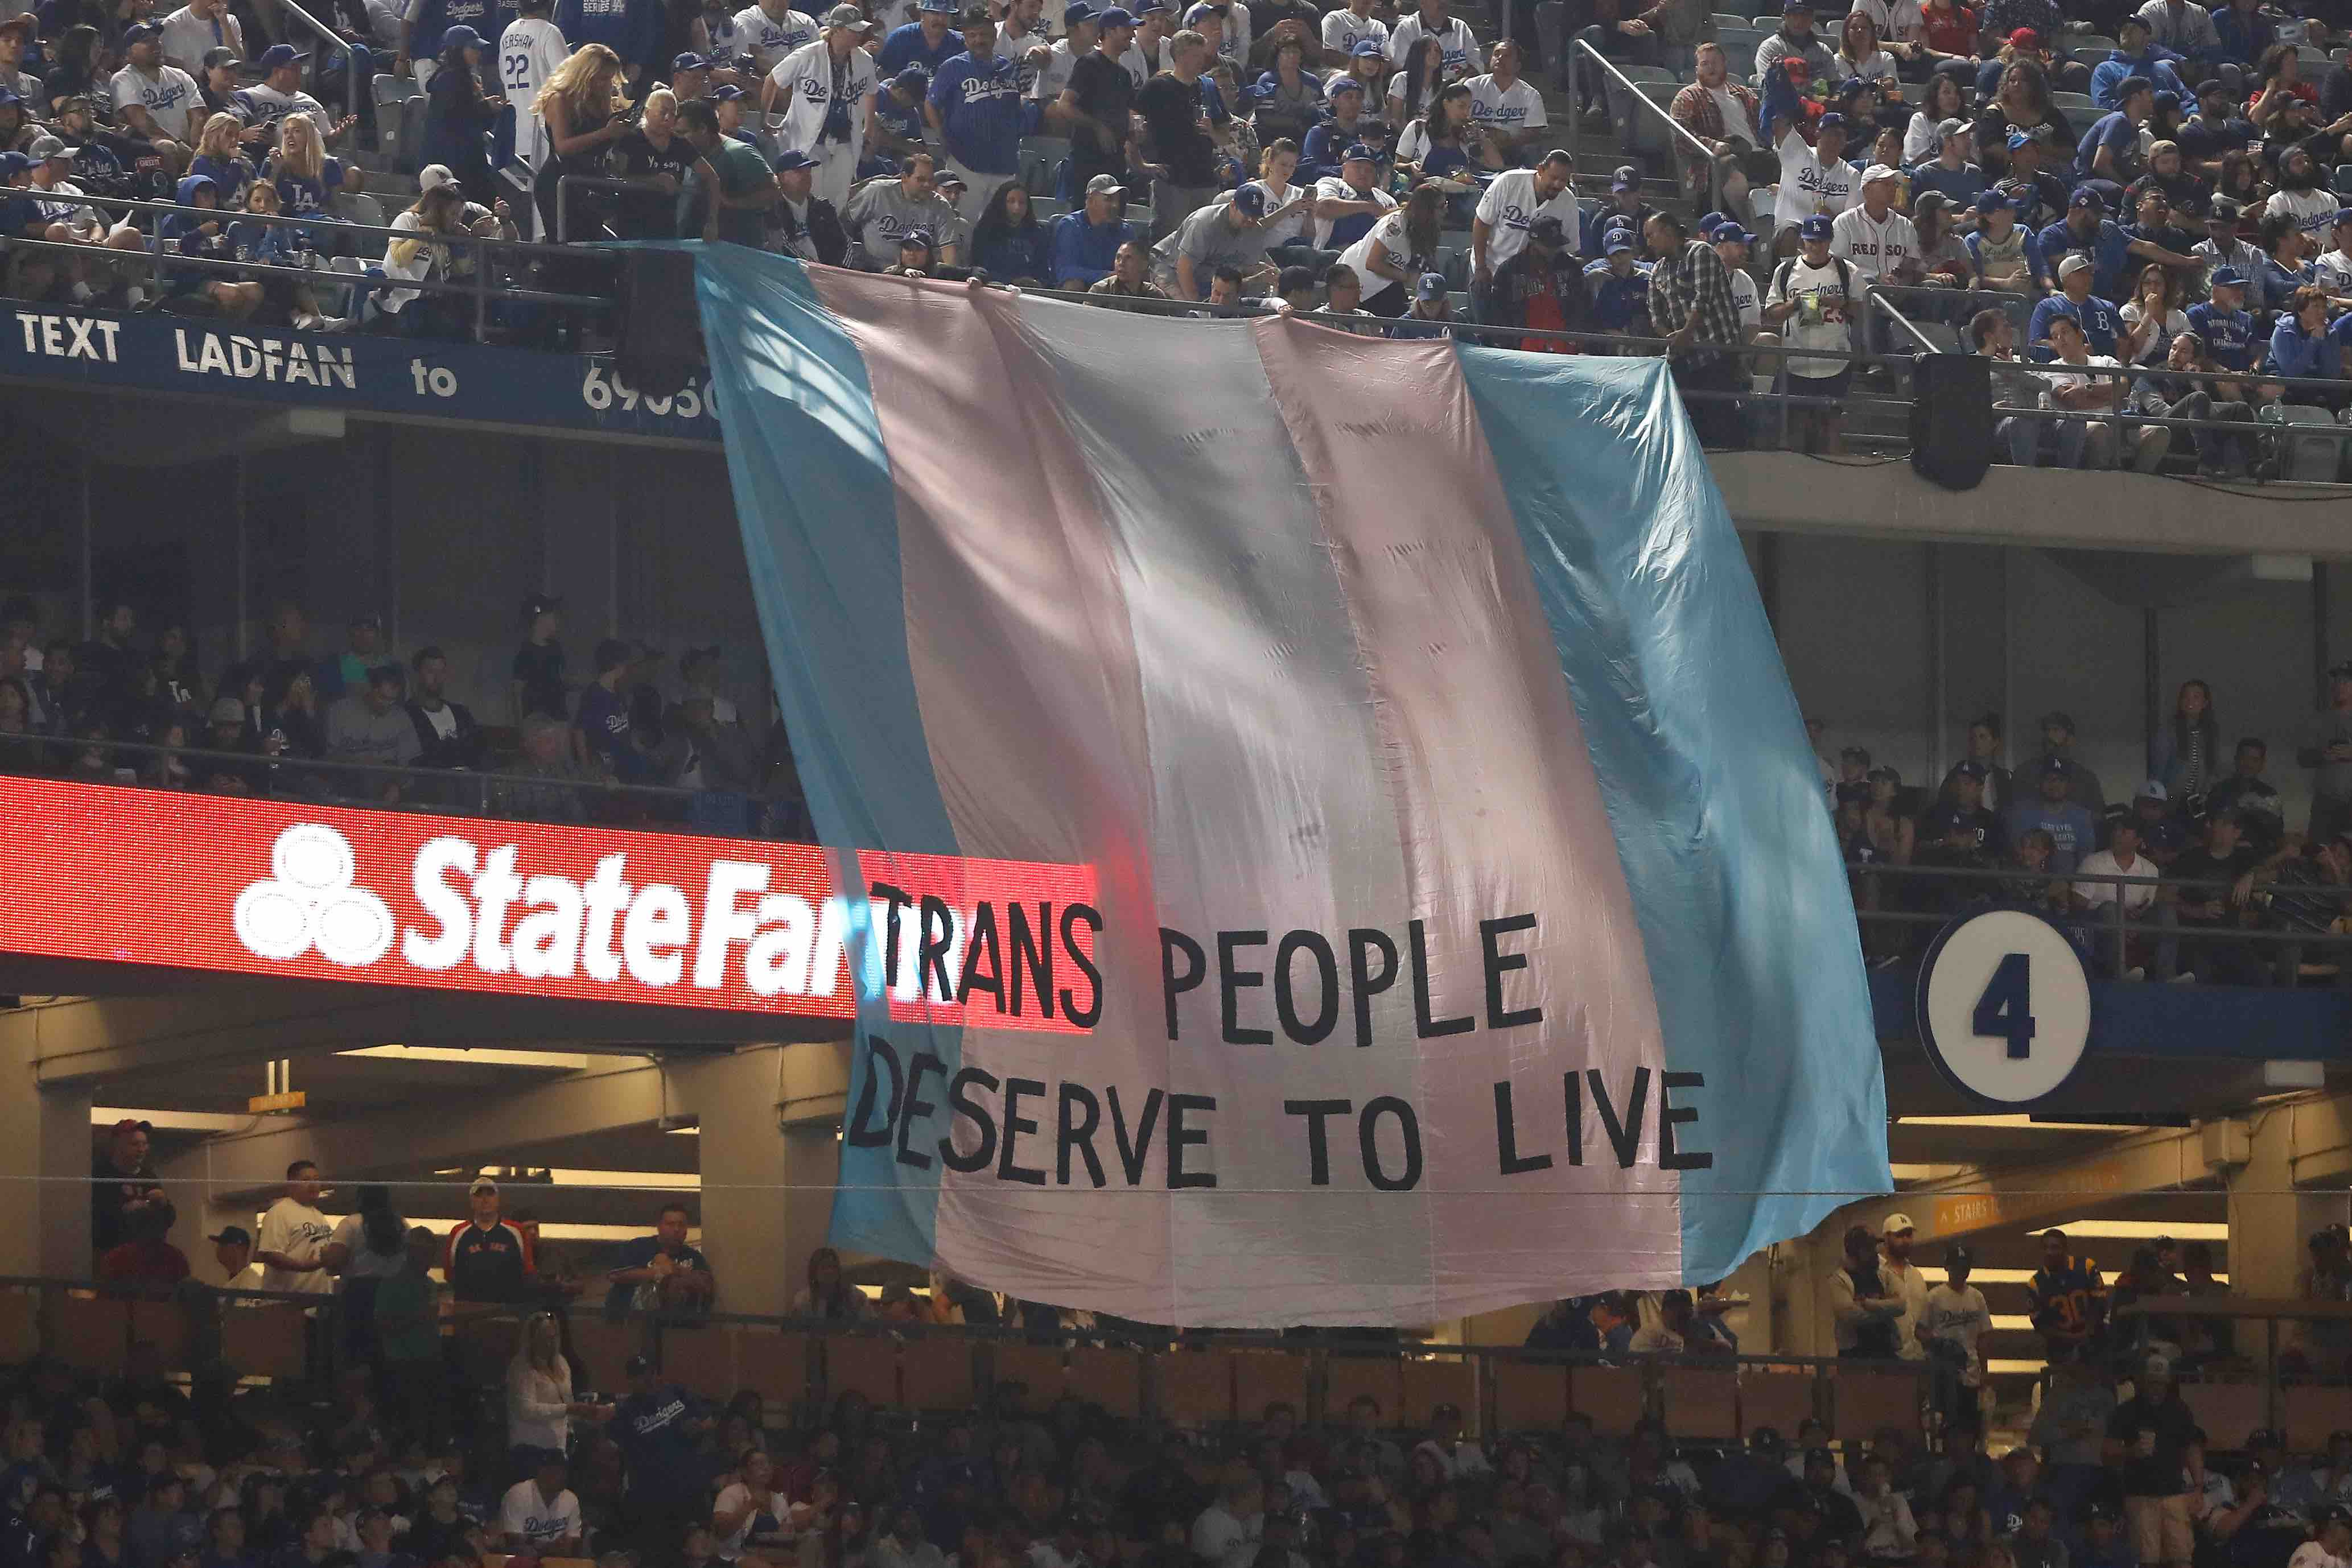 Meet the Latina-Led Organization That Unfurled the Trans Rights Banner at the World Series Final